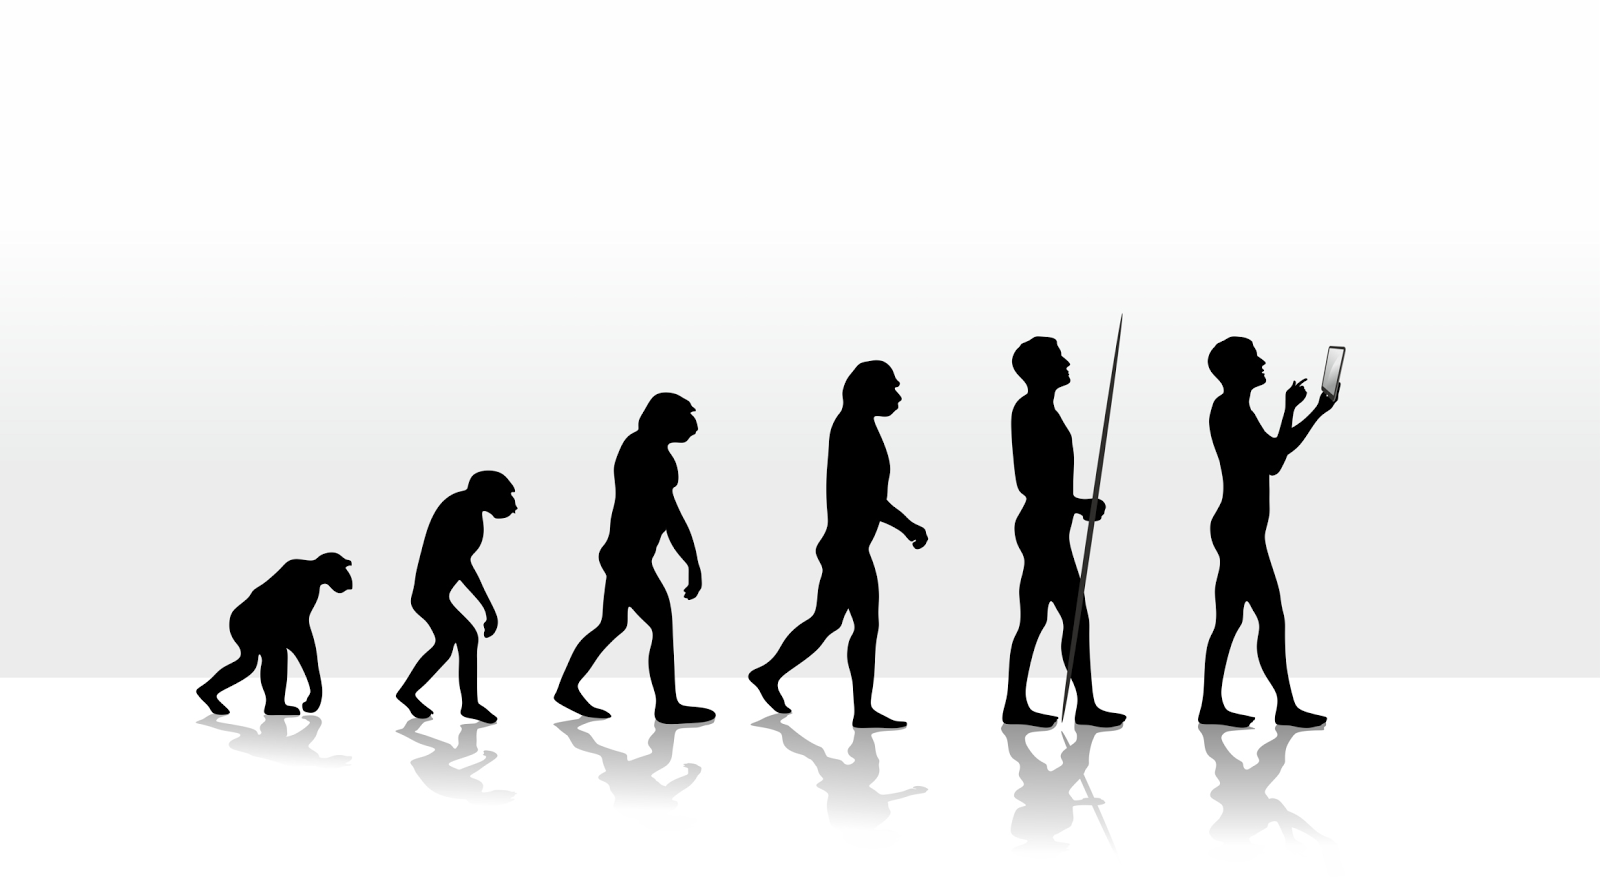 the evolution of consumer behavior in the digital age